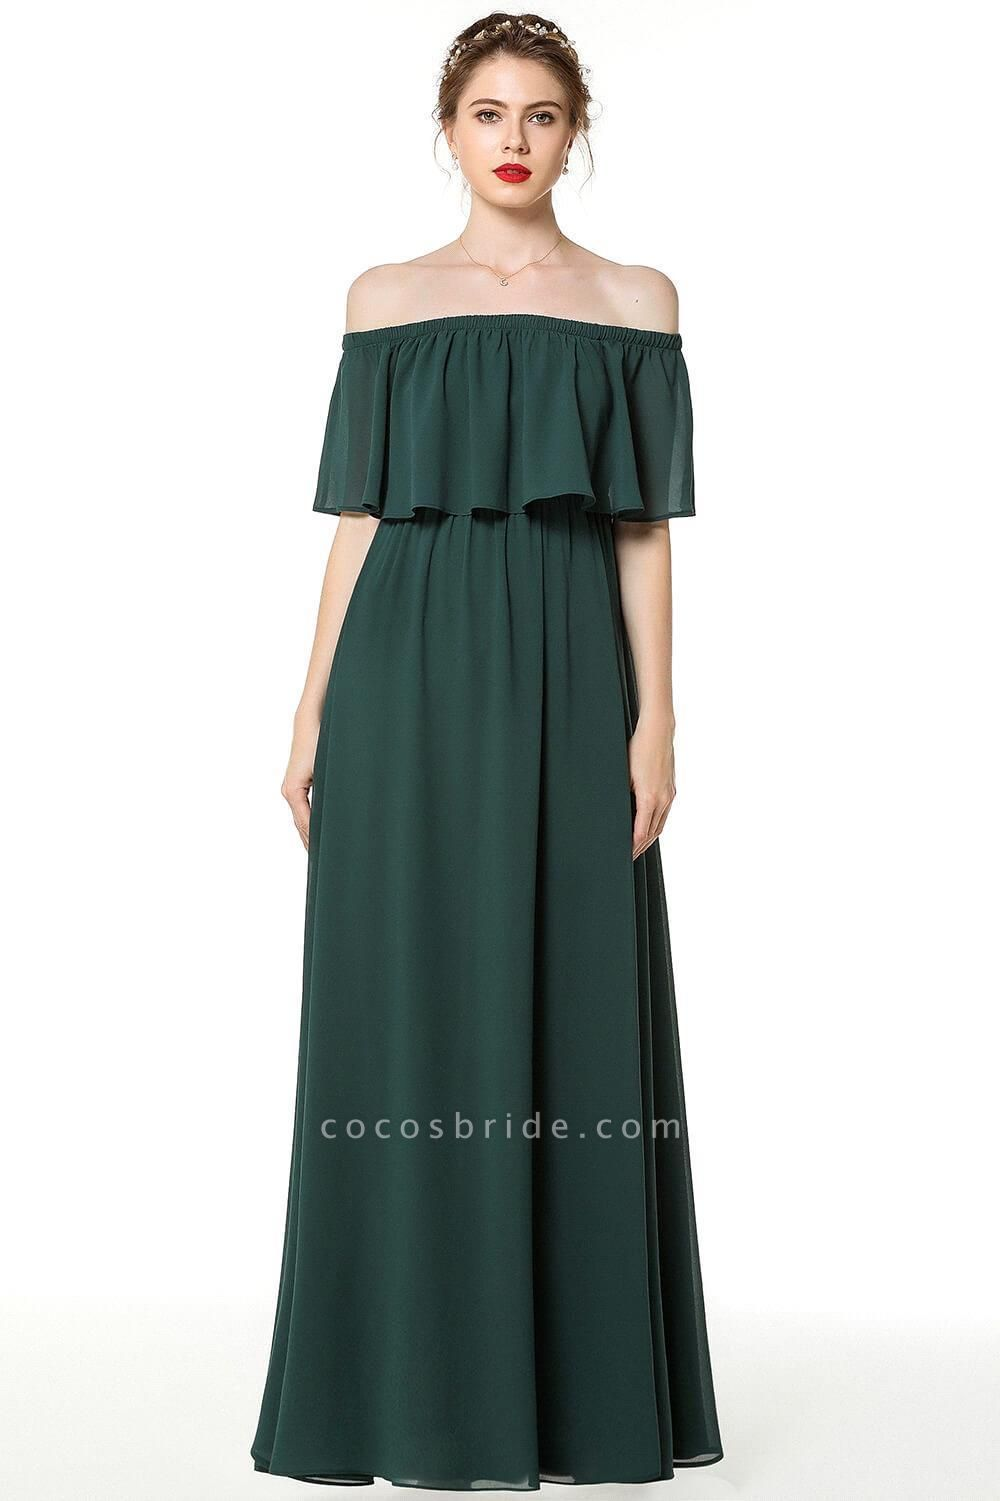 Pink A-line Long Off-the-shoulder Bridesmaid Dresses with Sleeves